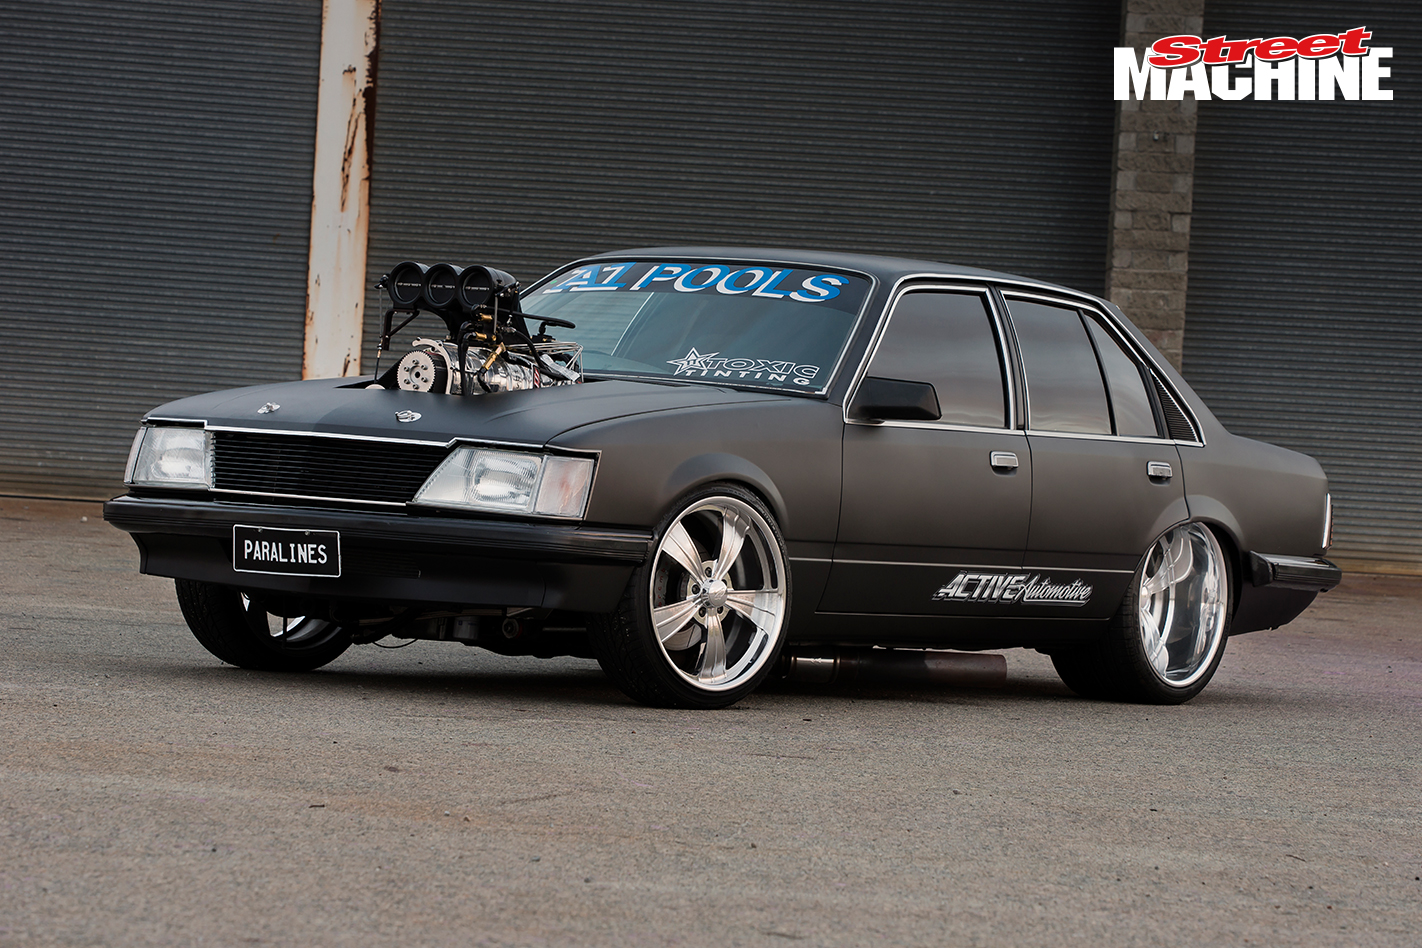 VH Commodore Burnout PARALINES 5 Nw